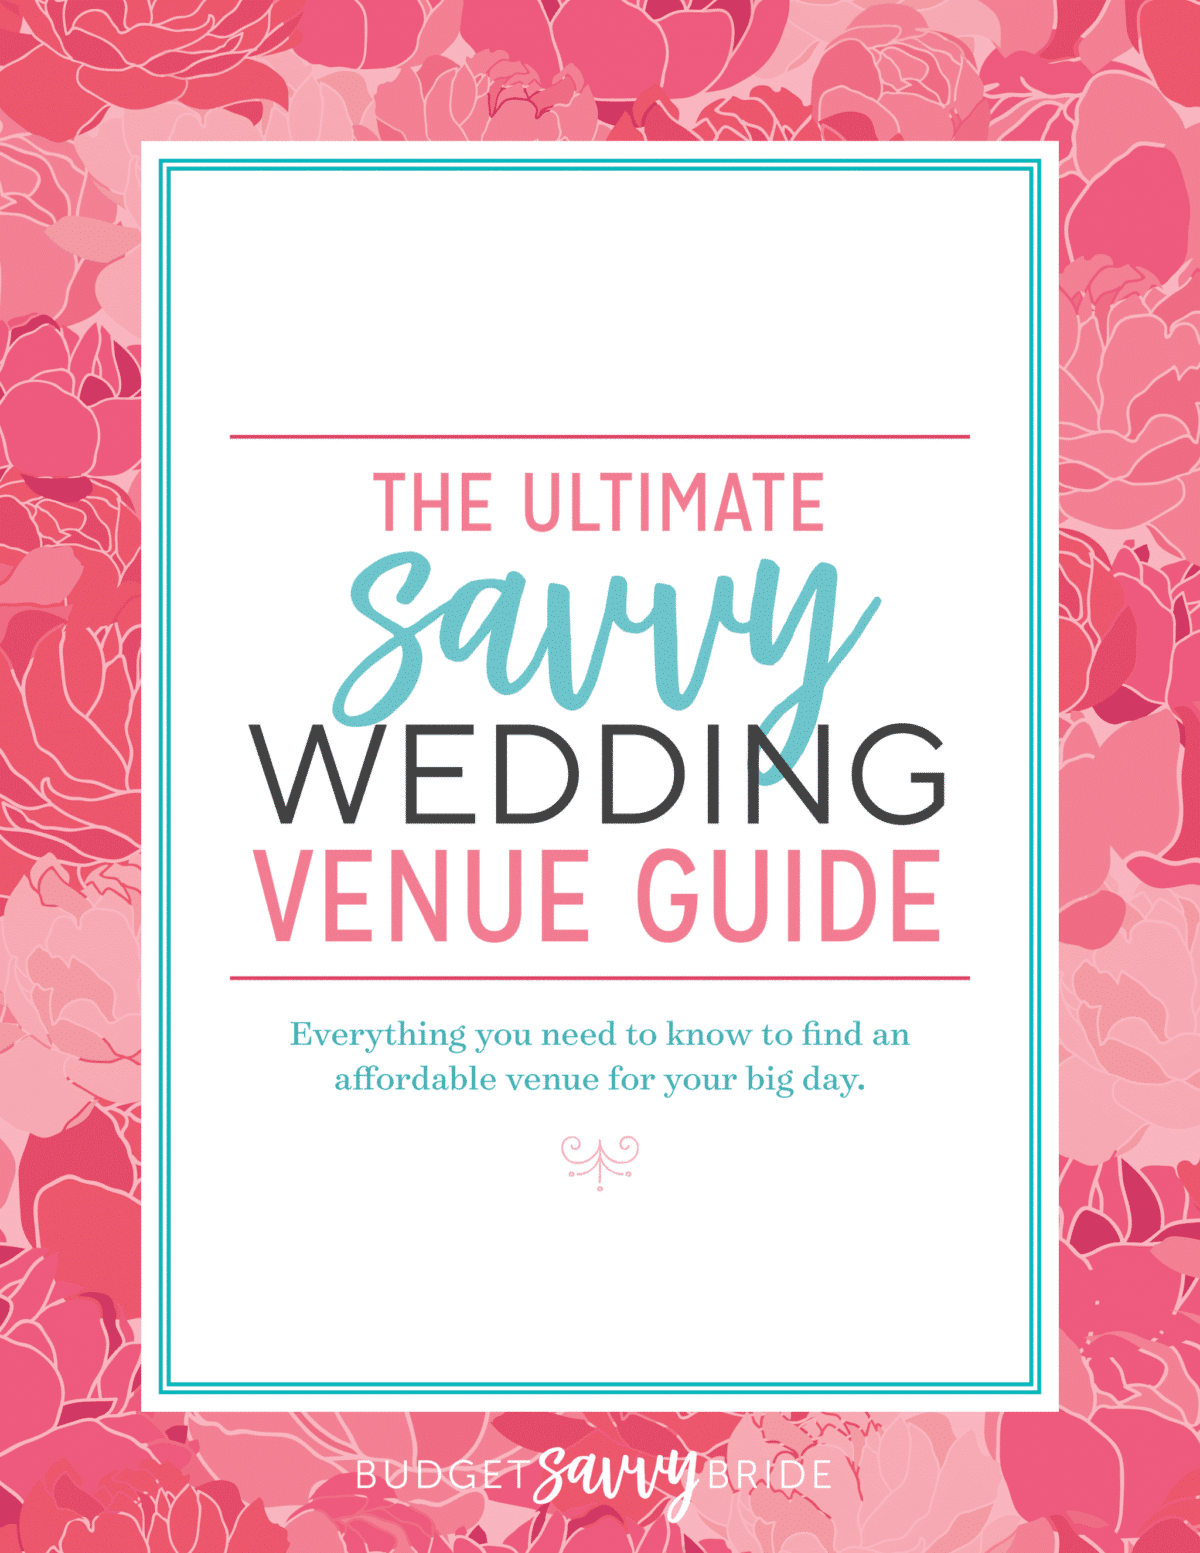 The Ultimate Savvy Wedding Venue Guide - Checklist of Questions to ask your wedding venue